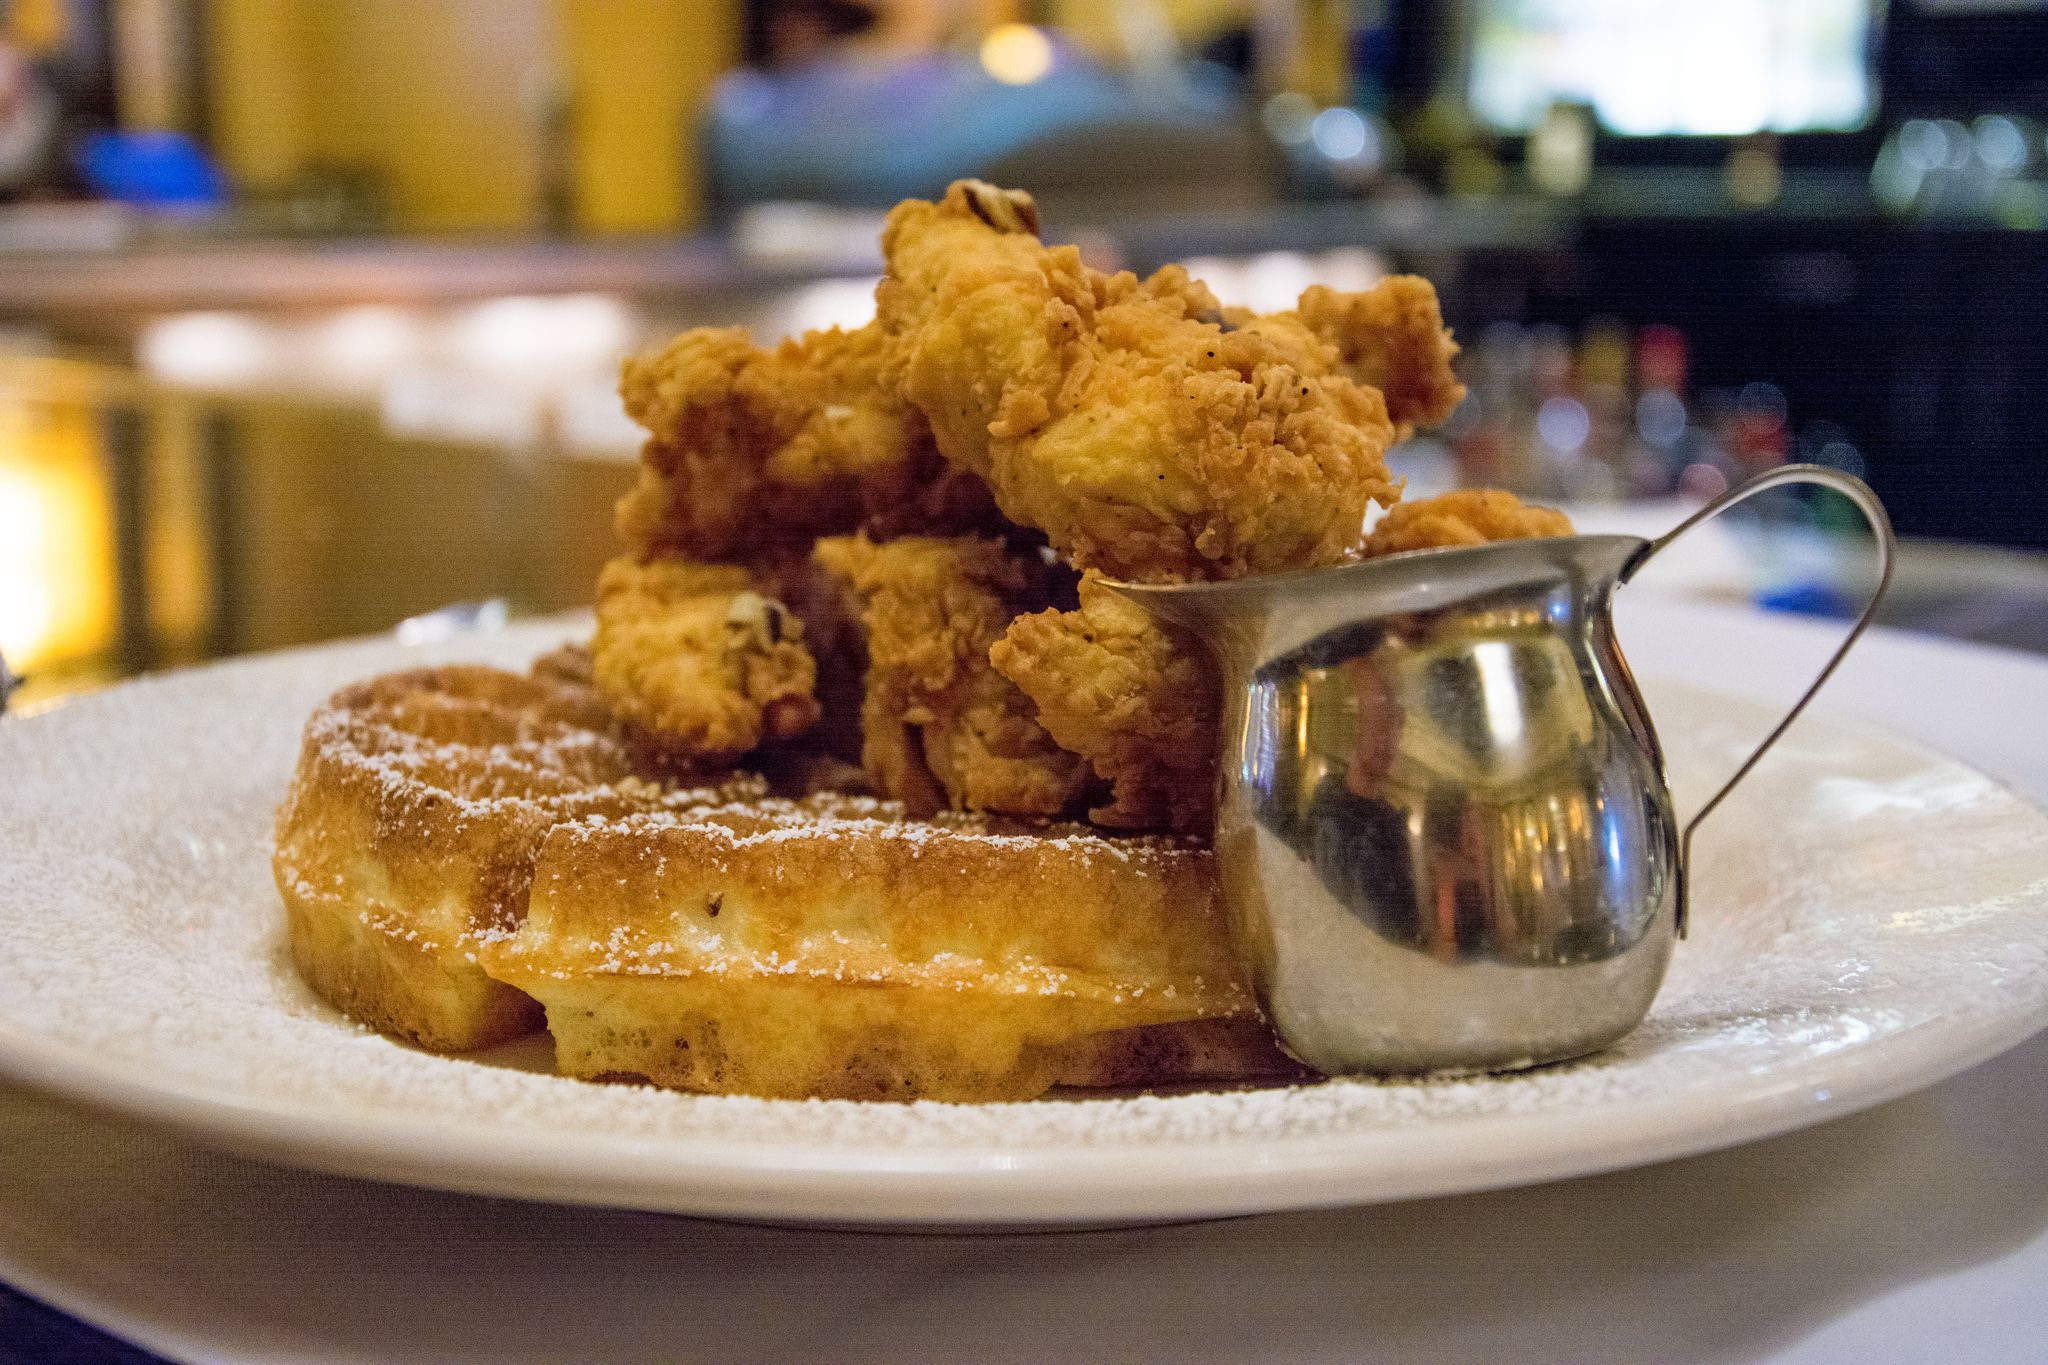 New York-style chicken and waffles